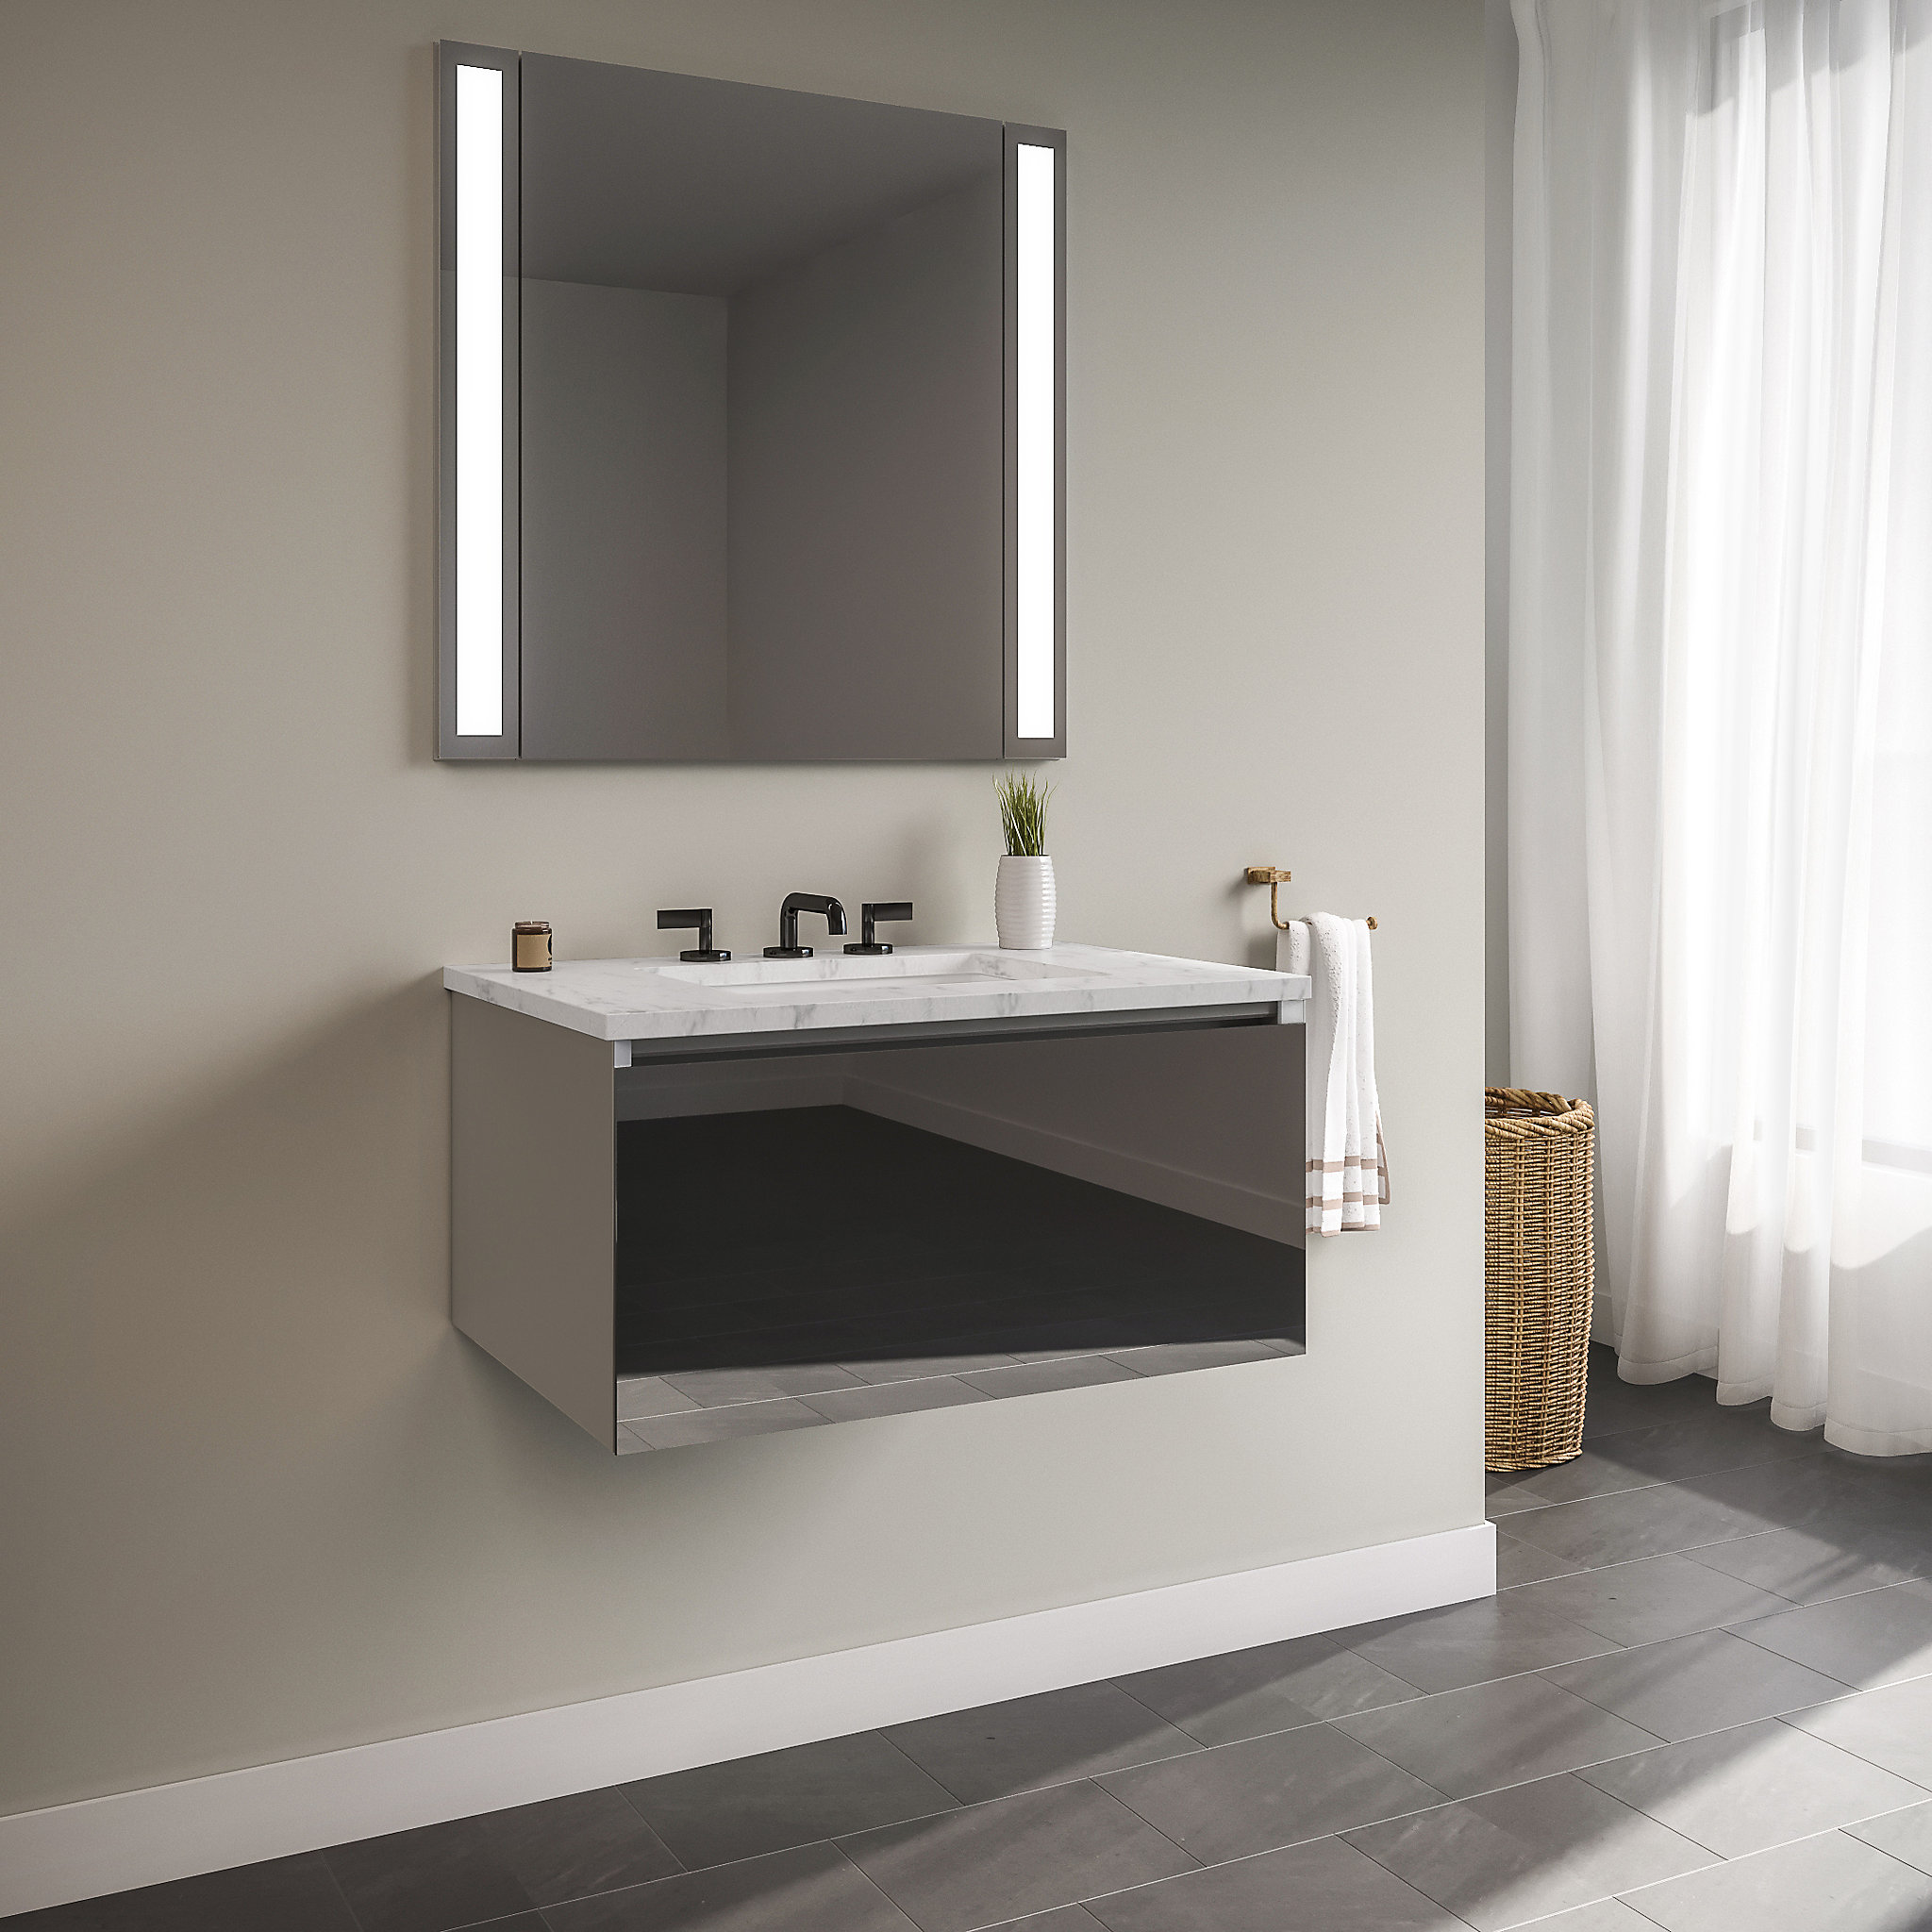 "Robern 24119400NB00001 Curated Cartesian Vanity, 24"" x 15"" x 21"", Single Drawer, Tinted Gray Mirror Glass, Plumbing Drawer, Engi"